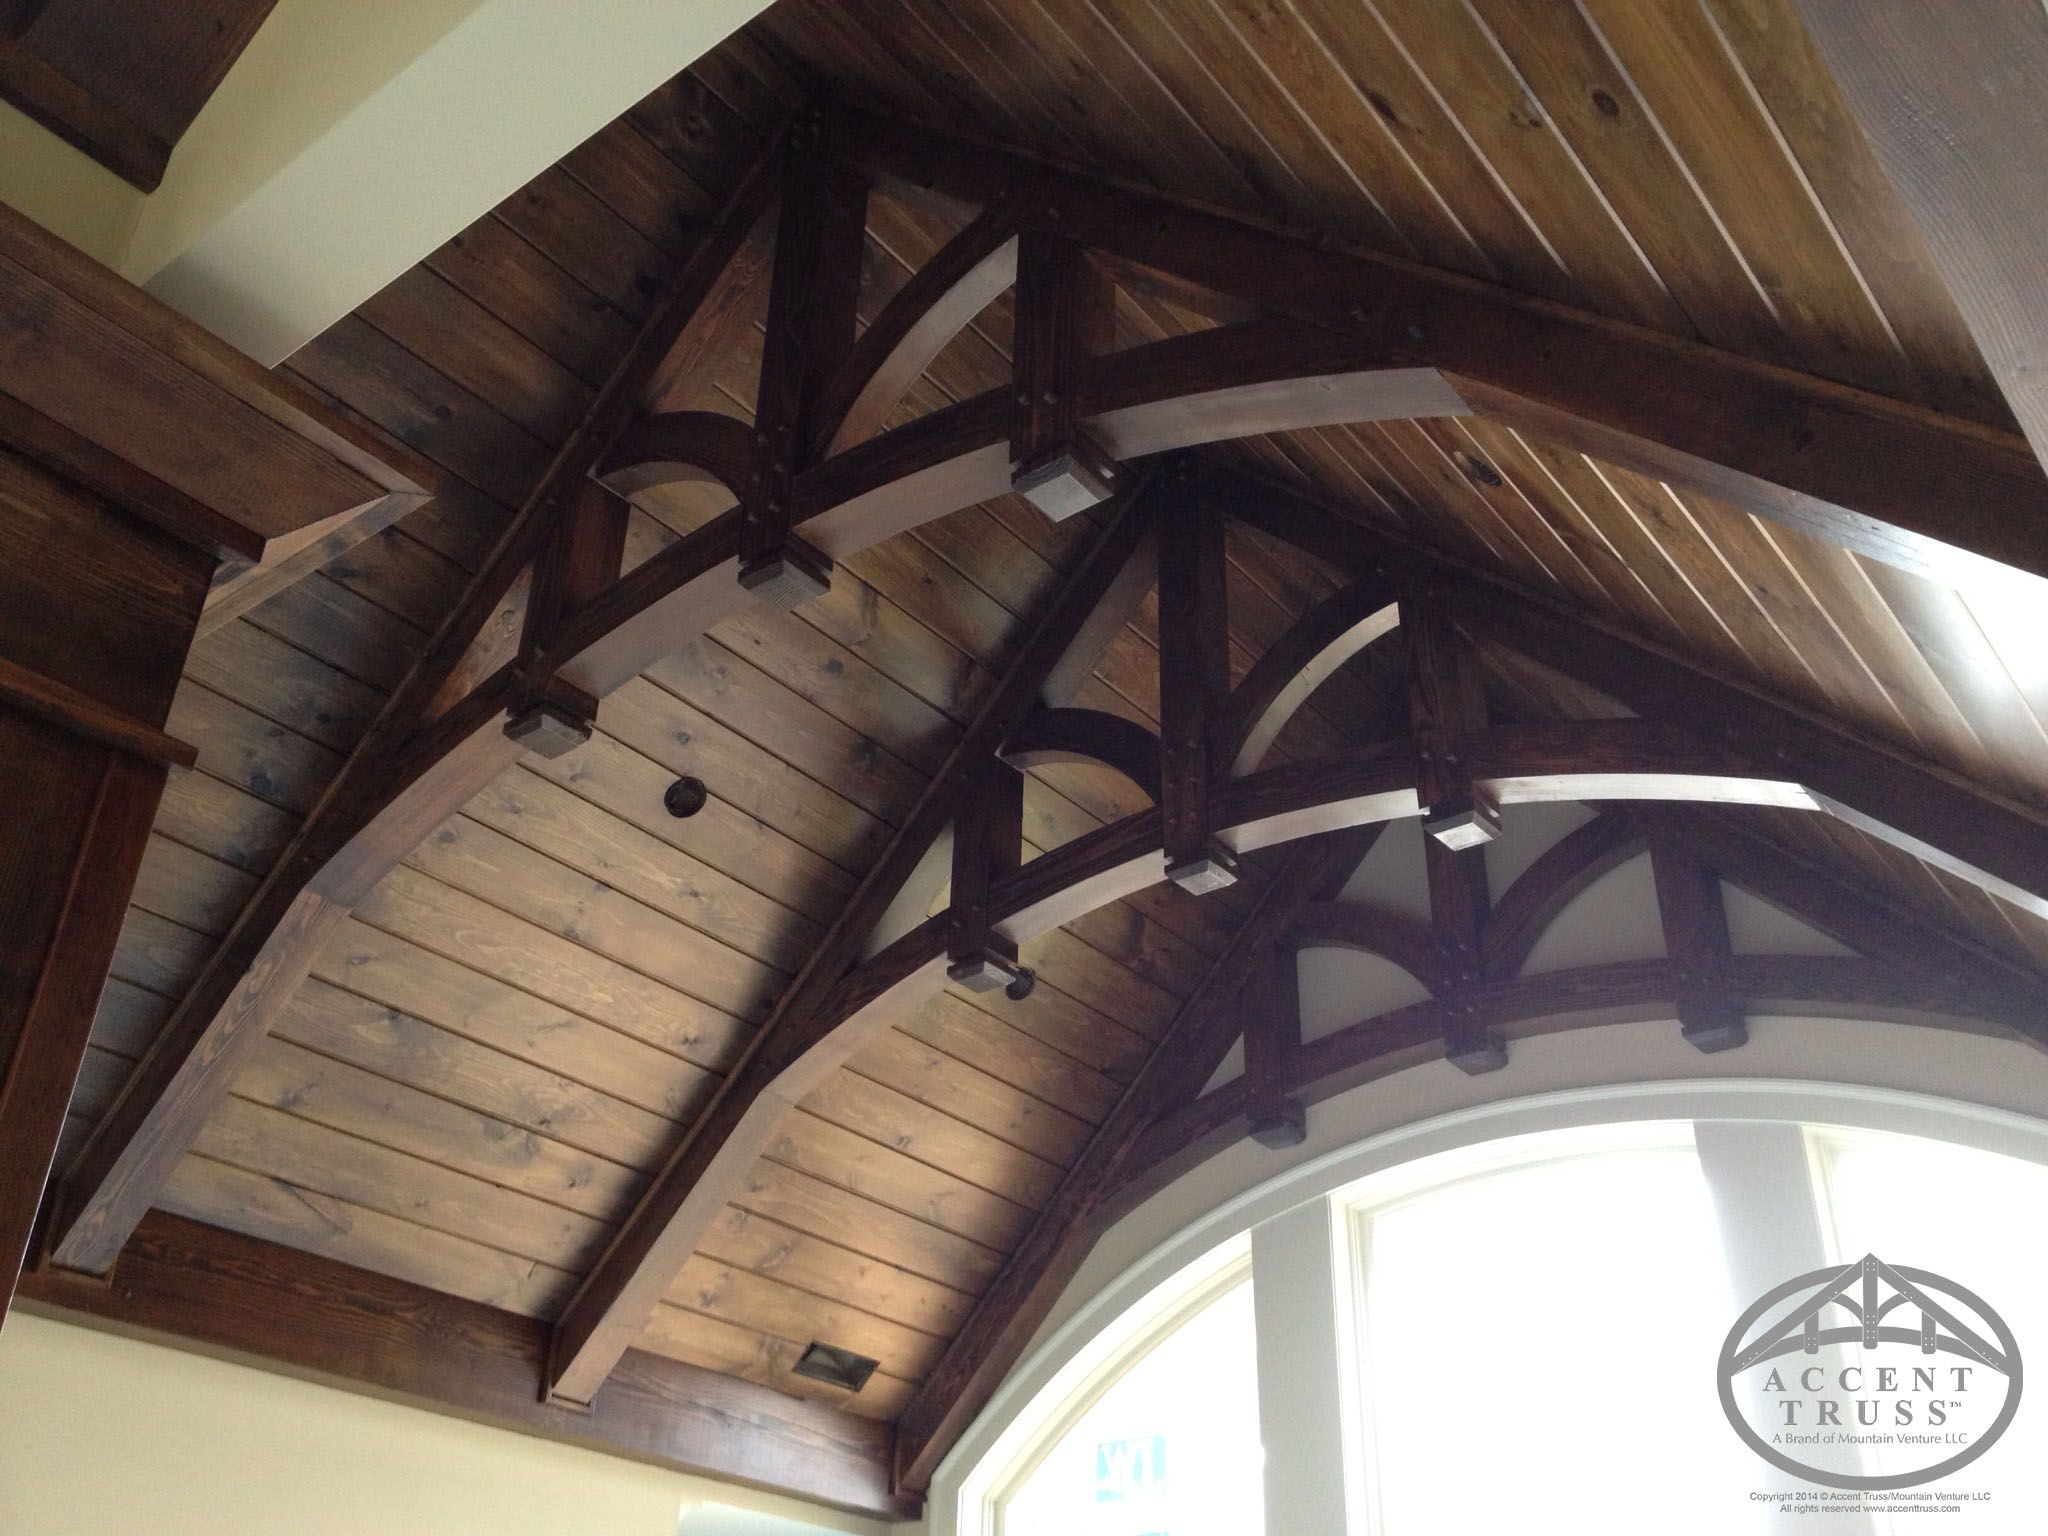 Dark stain on heavy trusses and a wood paneled ceiling trusses dark stain on heavy trusses and a wood paneled ceiling malvernweather Choice Image